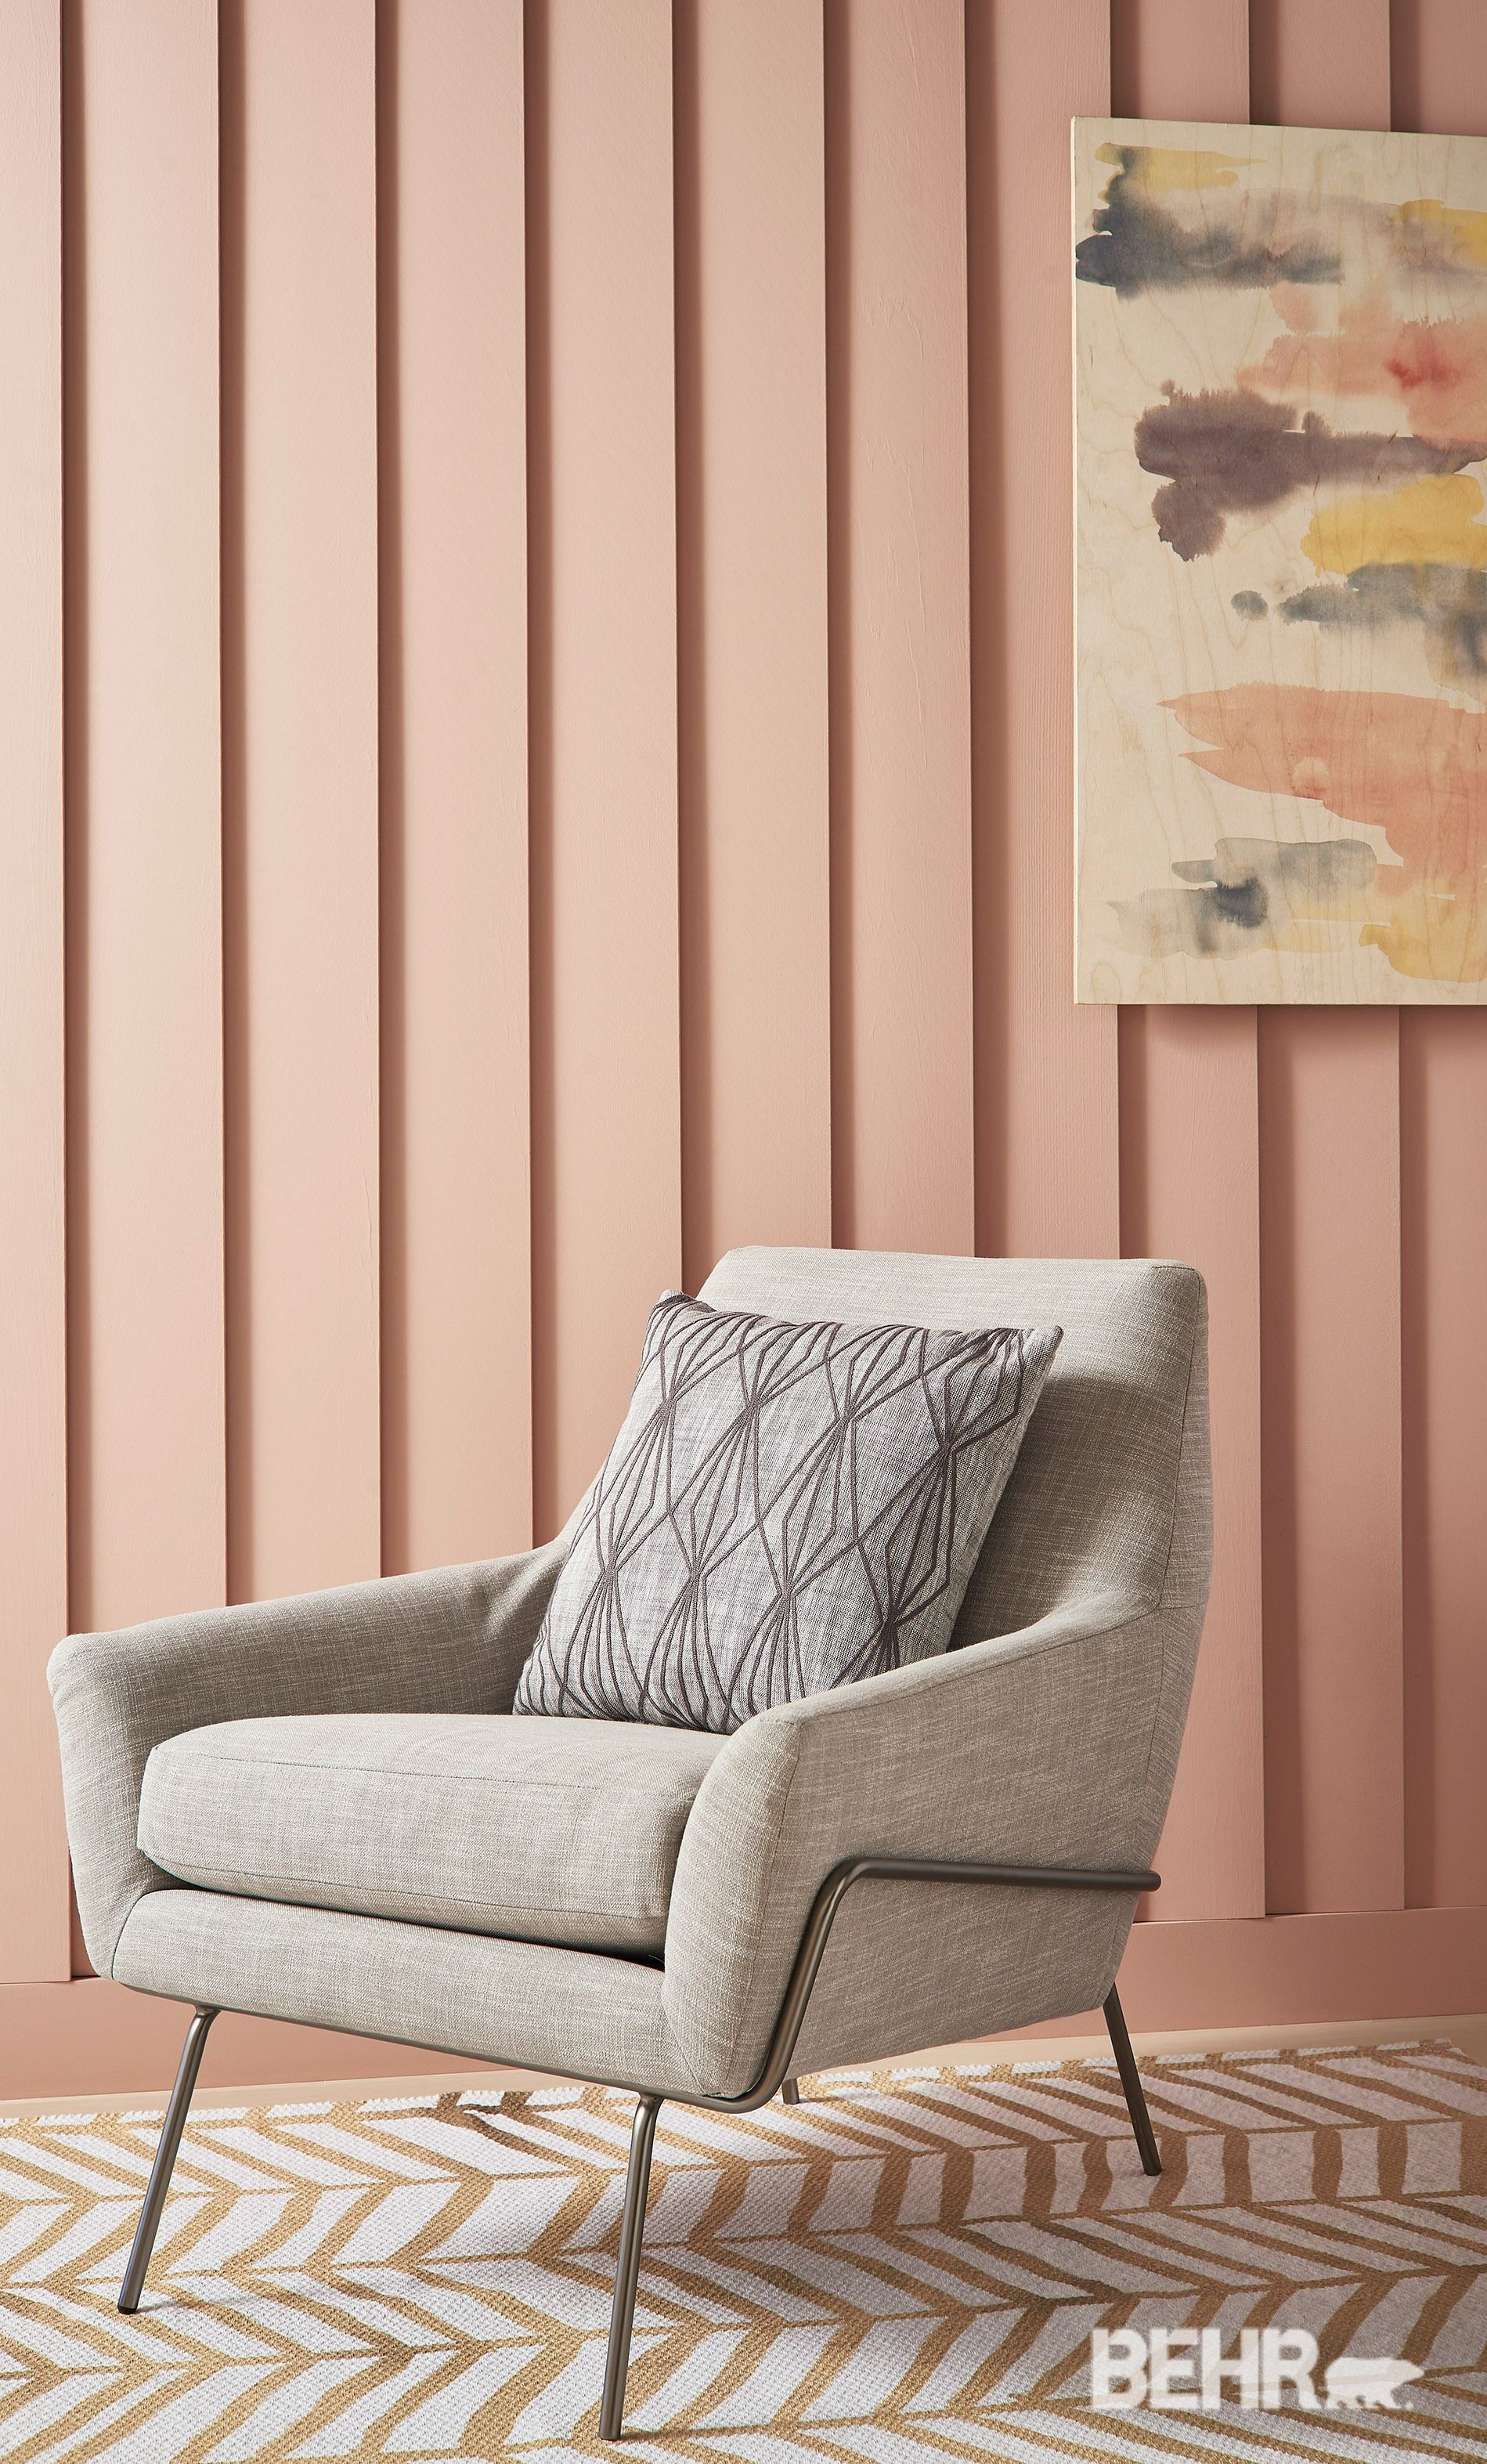 Paint Color Trends this soft paint color in everything's rosy, is a great way to make